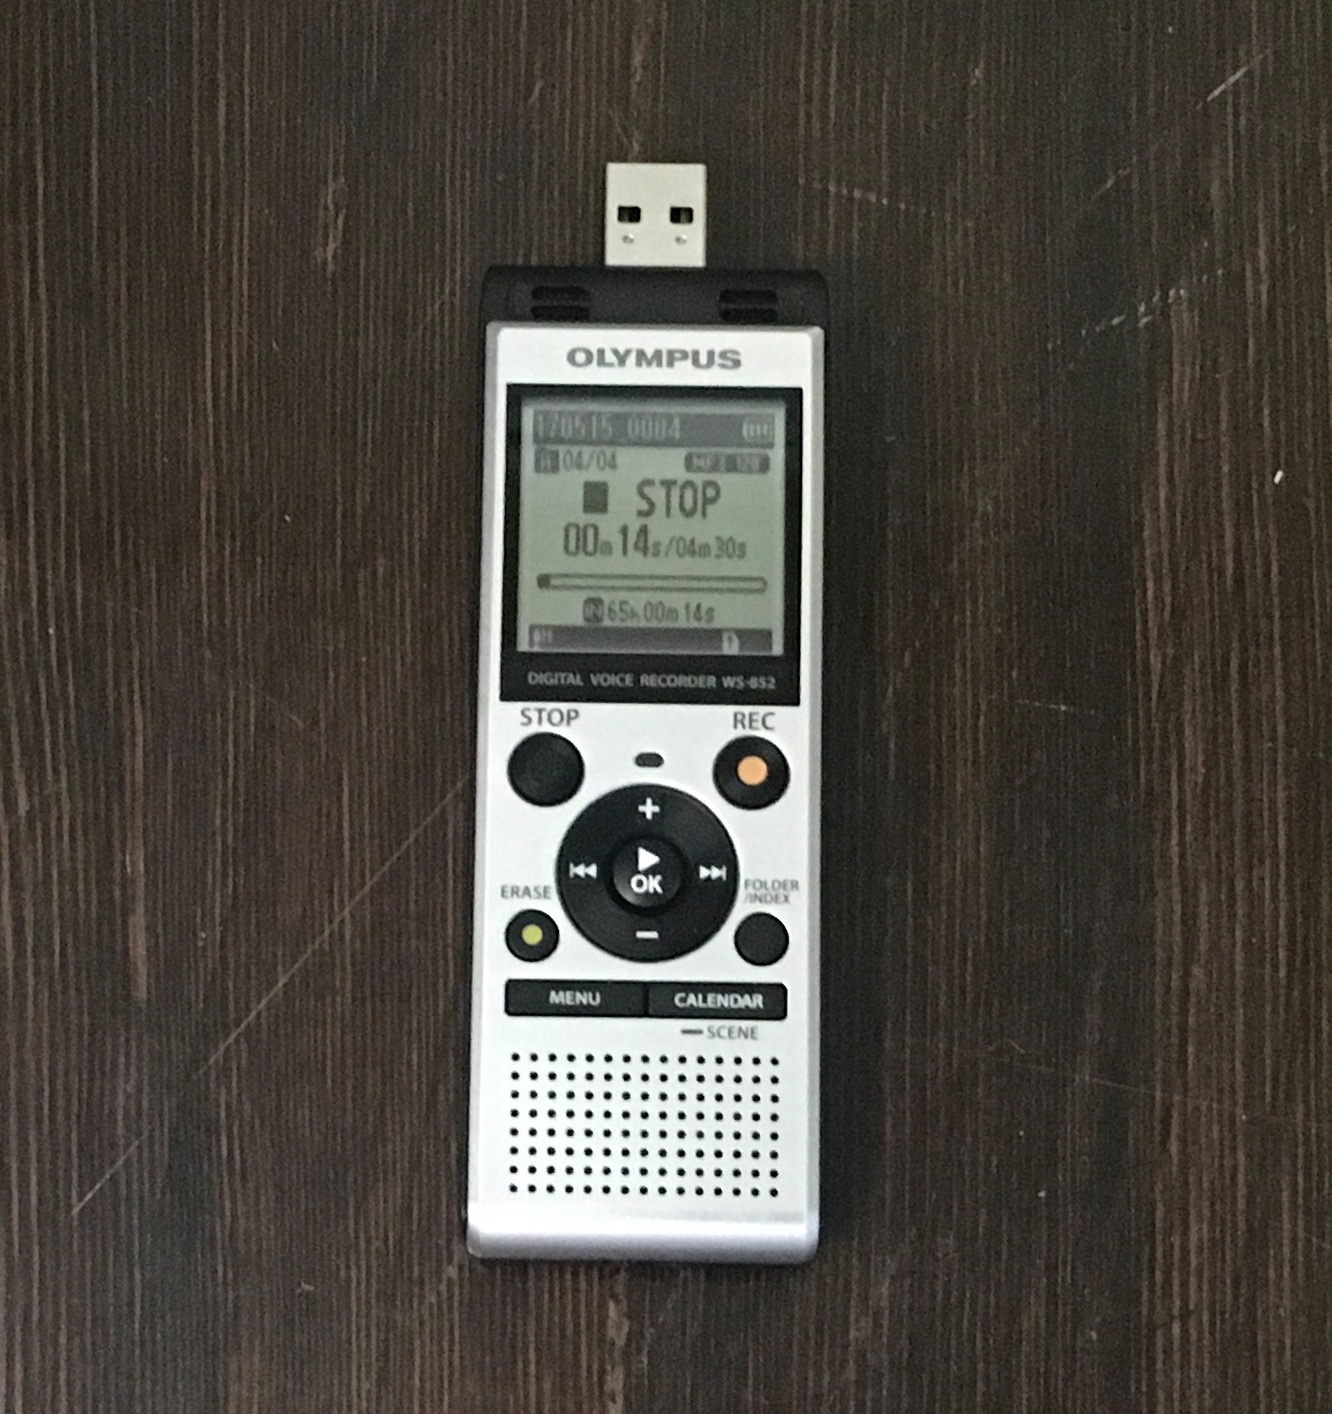 My all-time favorite digital voice recorder - the Olympus WS-852 with built-in USB connection. Click to get it on Amazon.